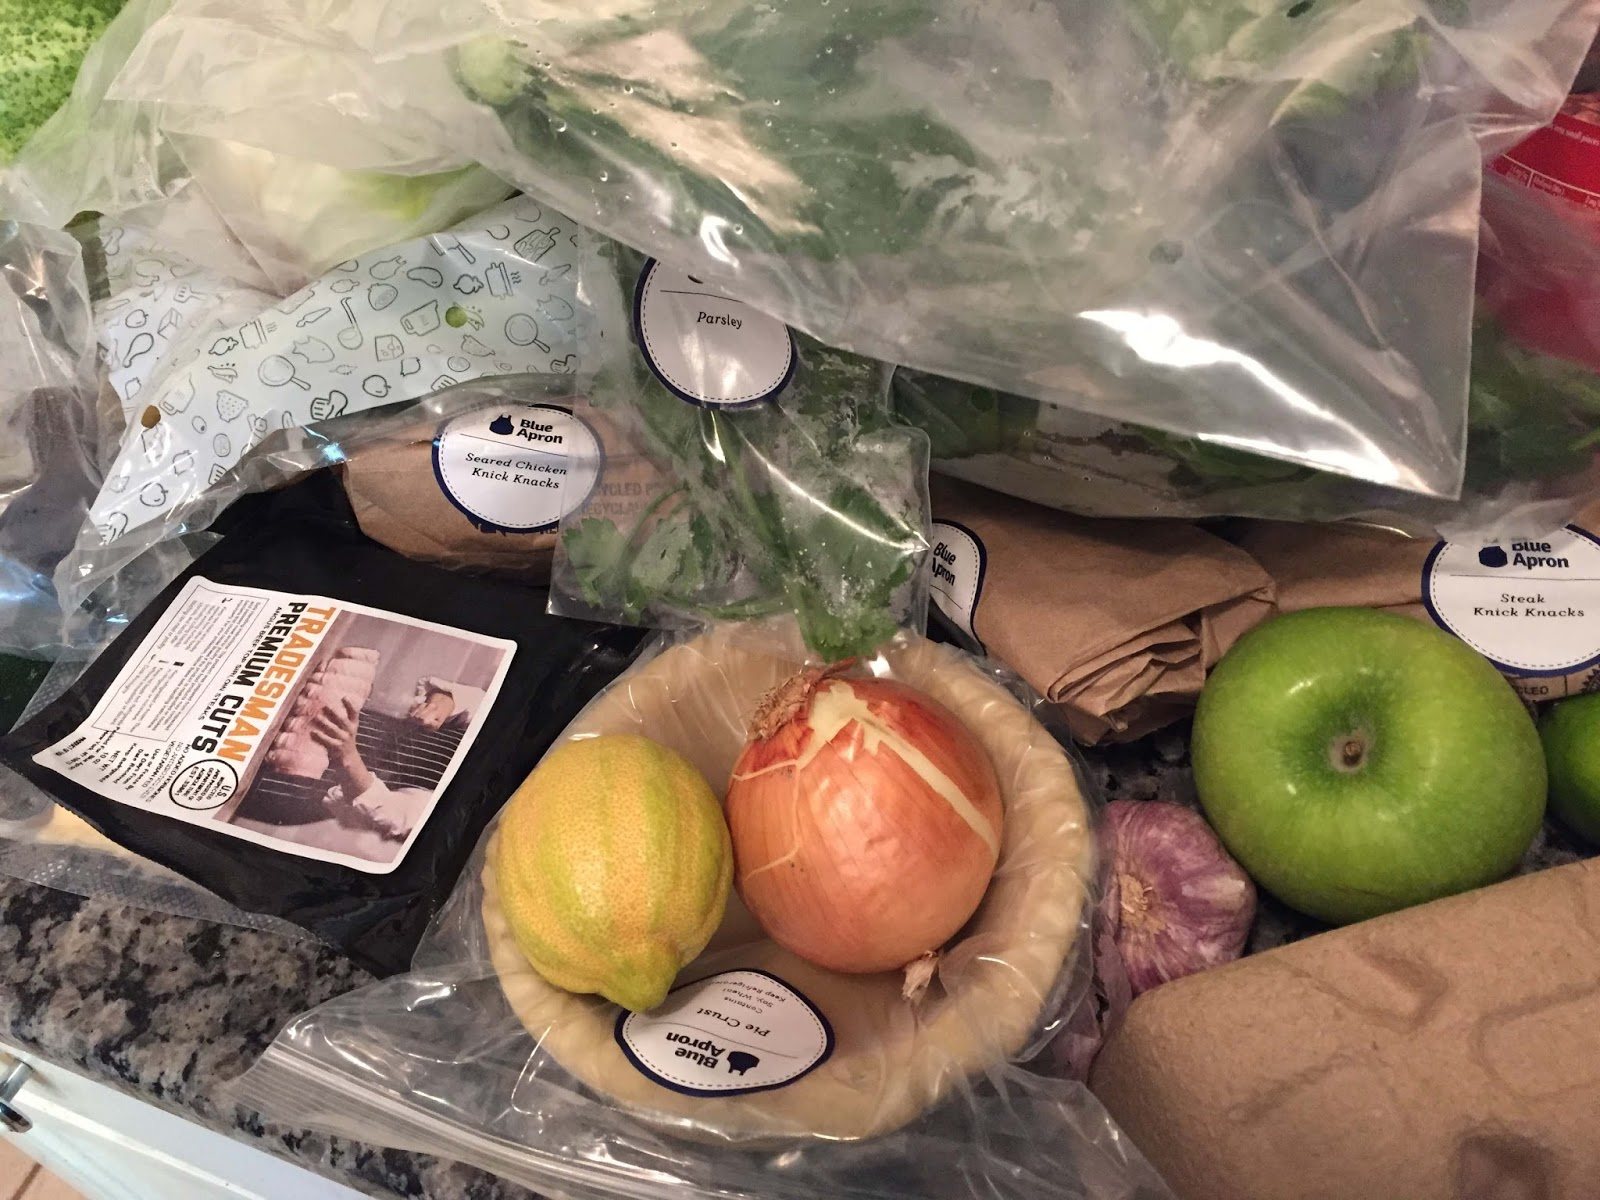 Blue apron zester - I M Not Getting Anything For Telling You About Blue Apron I Just Decided To Try It And If You Are Like Me You Ve Heard About It And Wondered What It